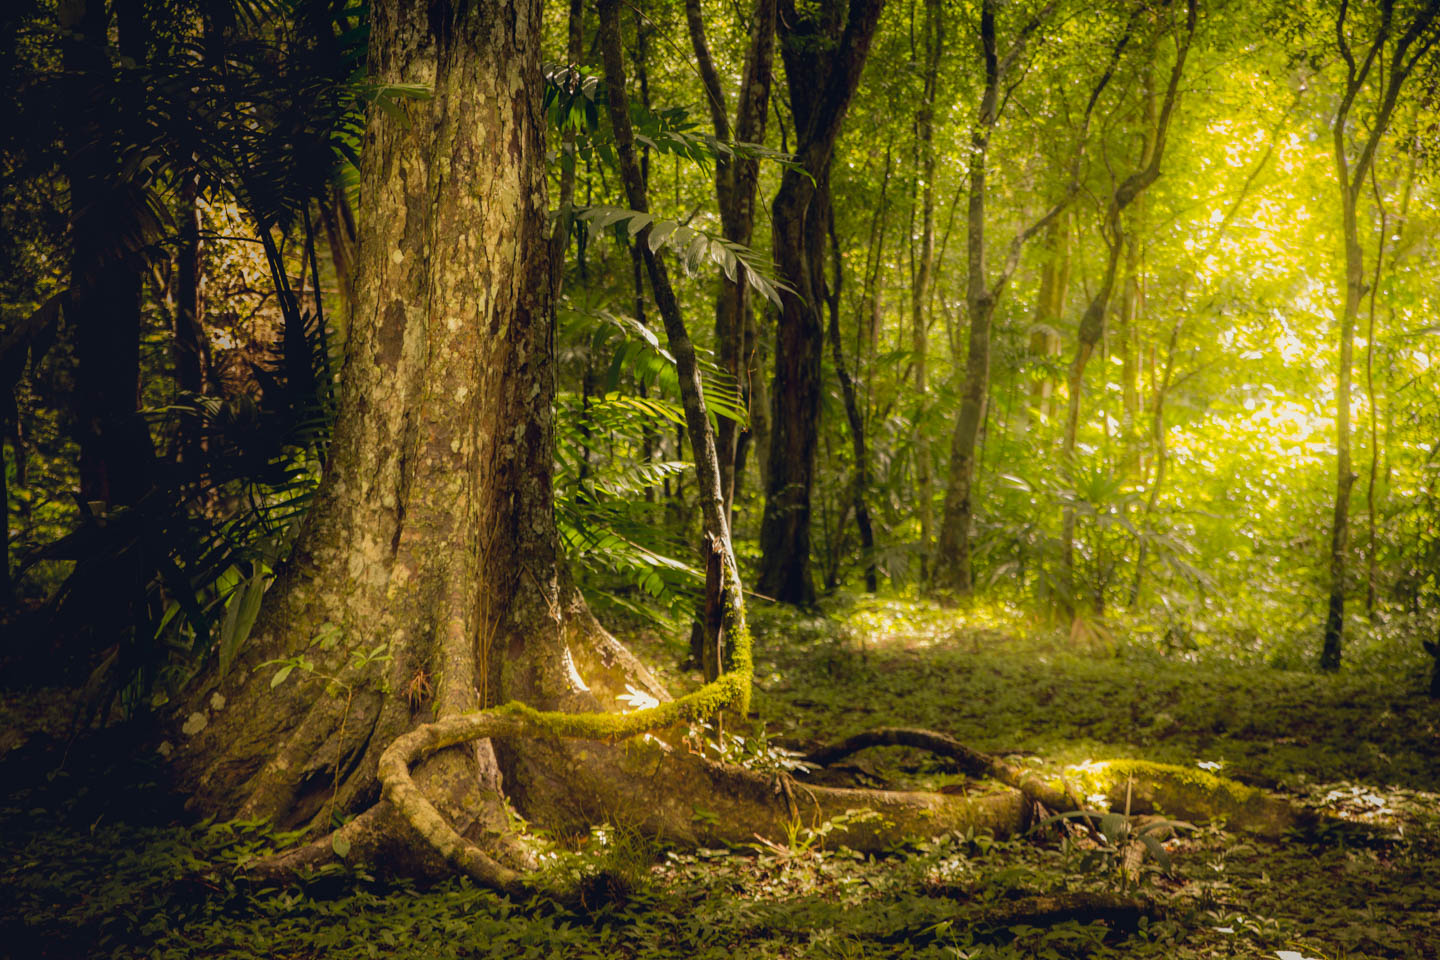 It is hard to resist photographing the dappled sunlight passing through the dense jungle canopy.